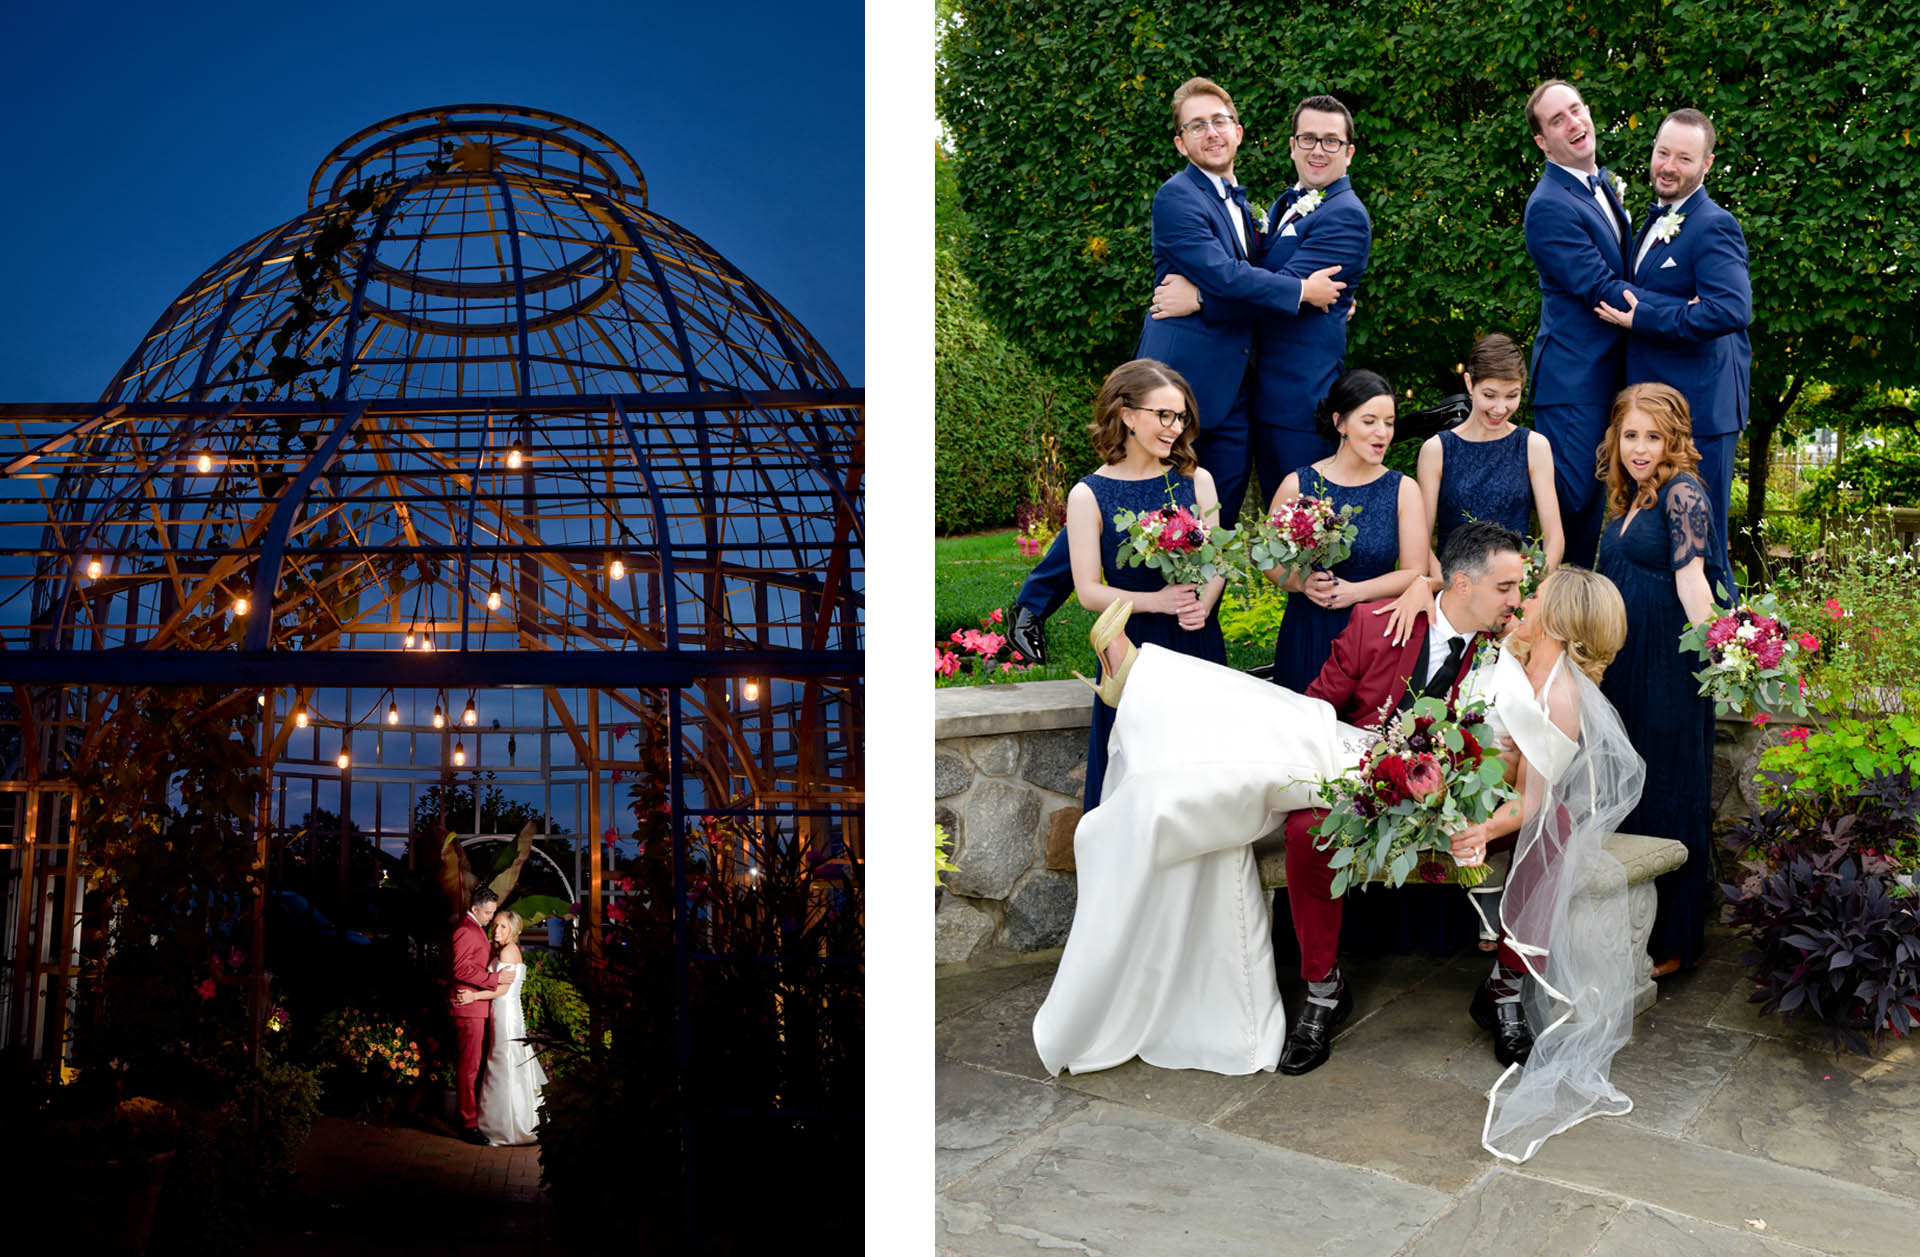 A wedding at the botanical gardens Conservatory in Taylor, Michigan.